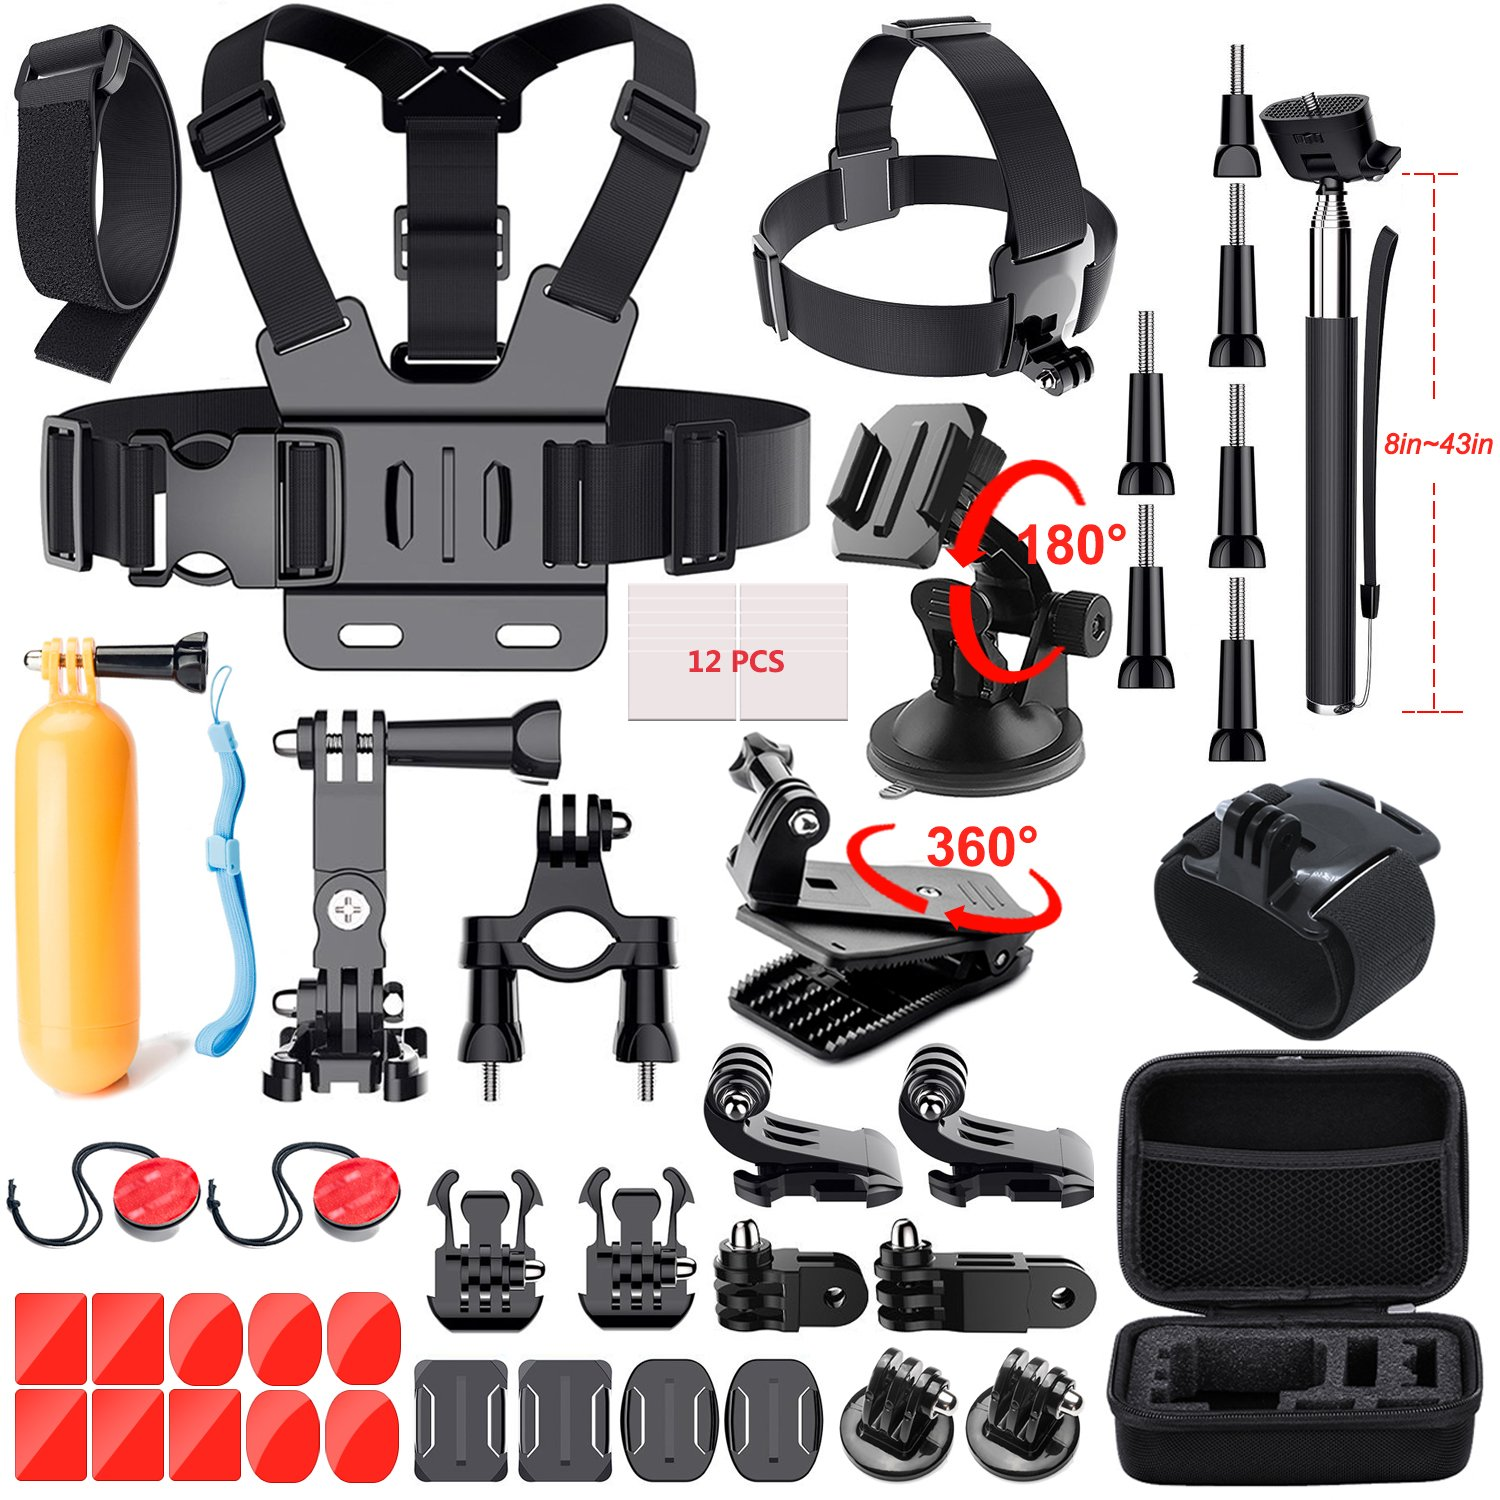 41-In-1 Action Camera Accessories Kit for GoPro Hero 6/GoPro Fusion/Hero 5/Session 5/4/3+/3/2/1/SJ4000/5000/6000/AKASO/Xiaomi Yi 4K and More by Mogomiten(41 items)